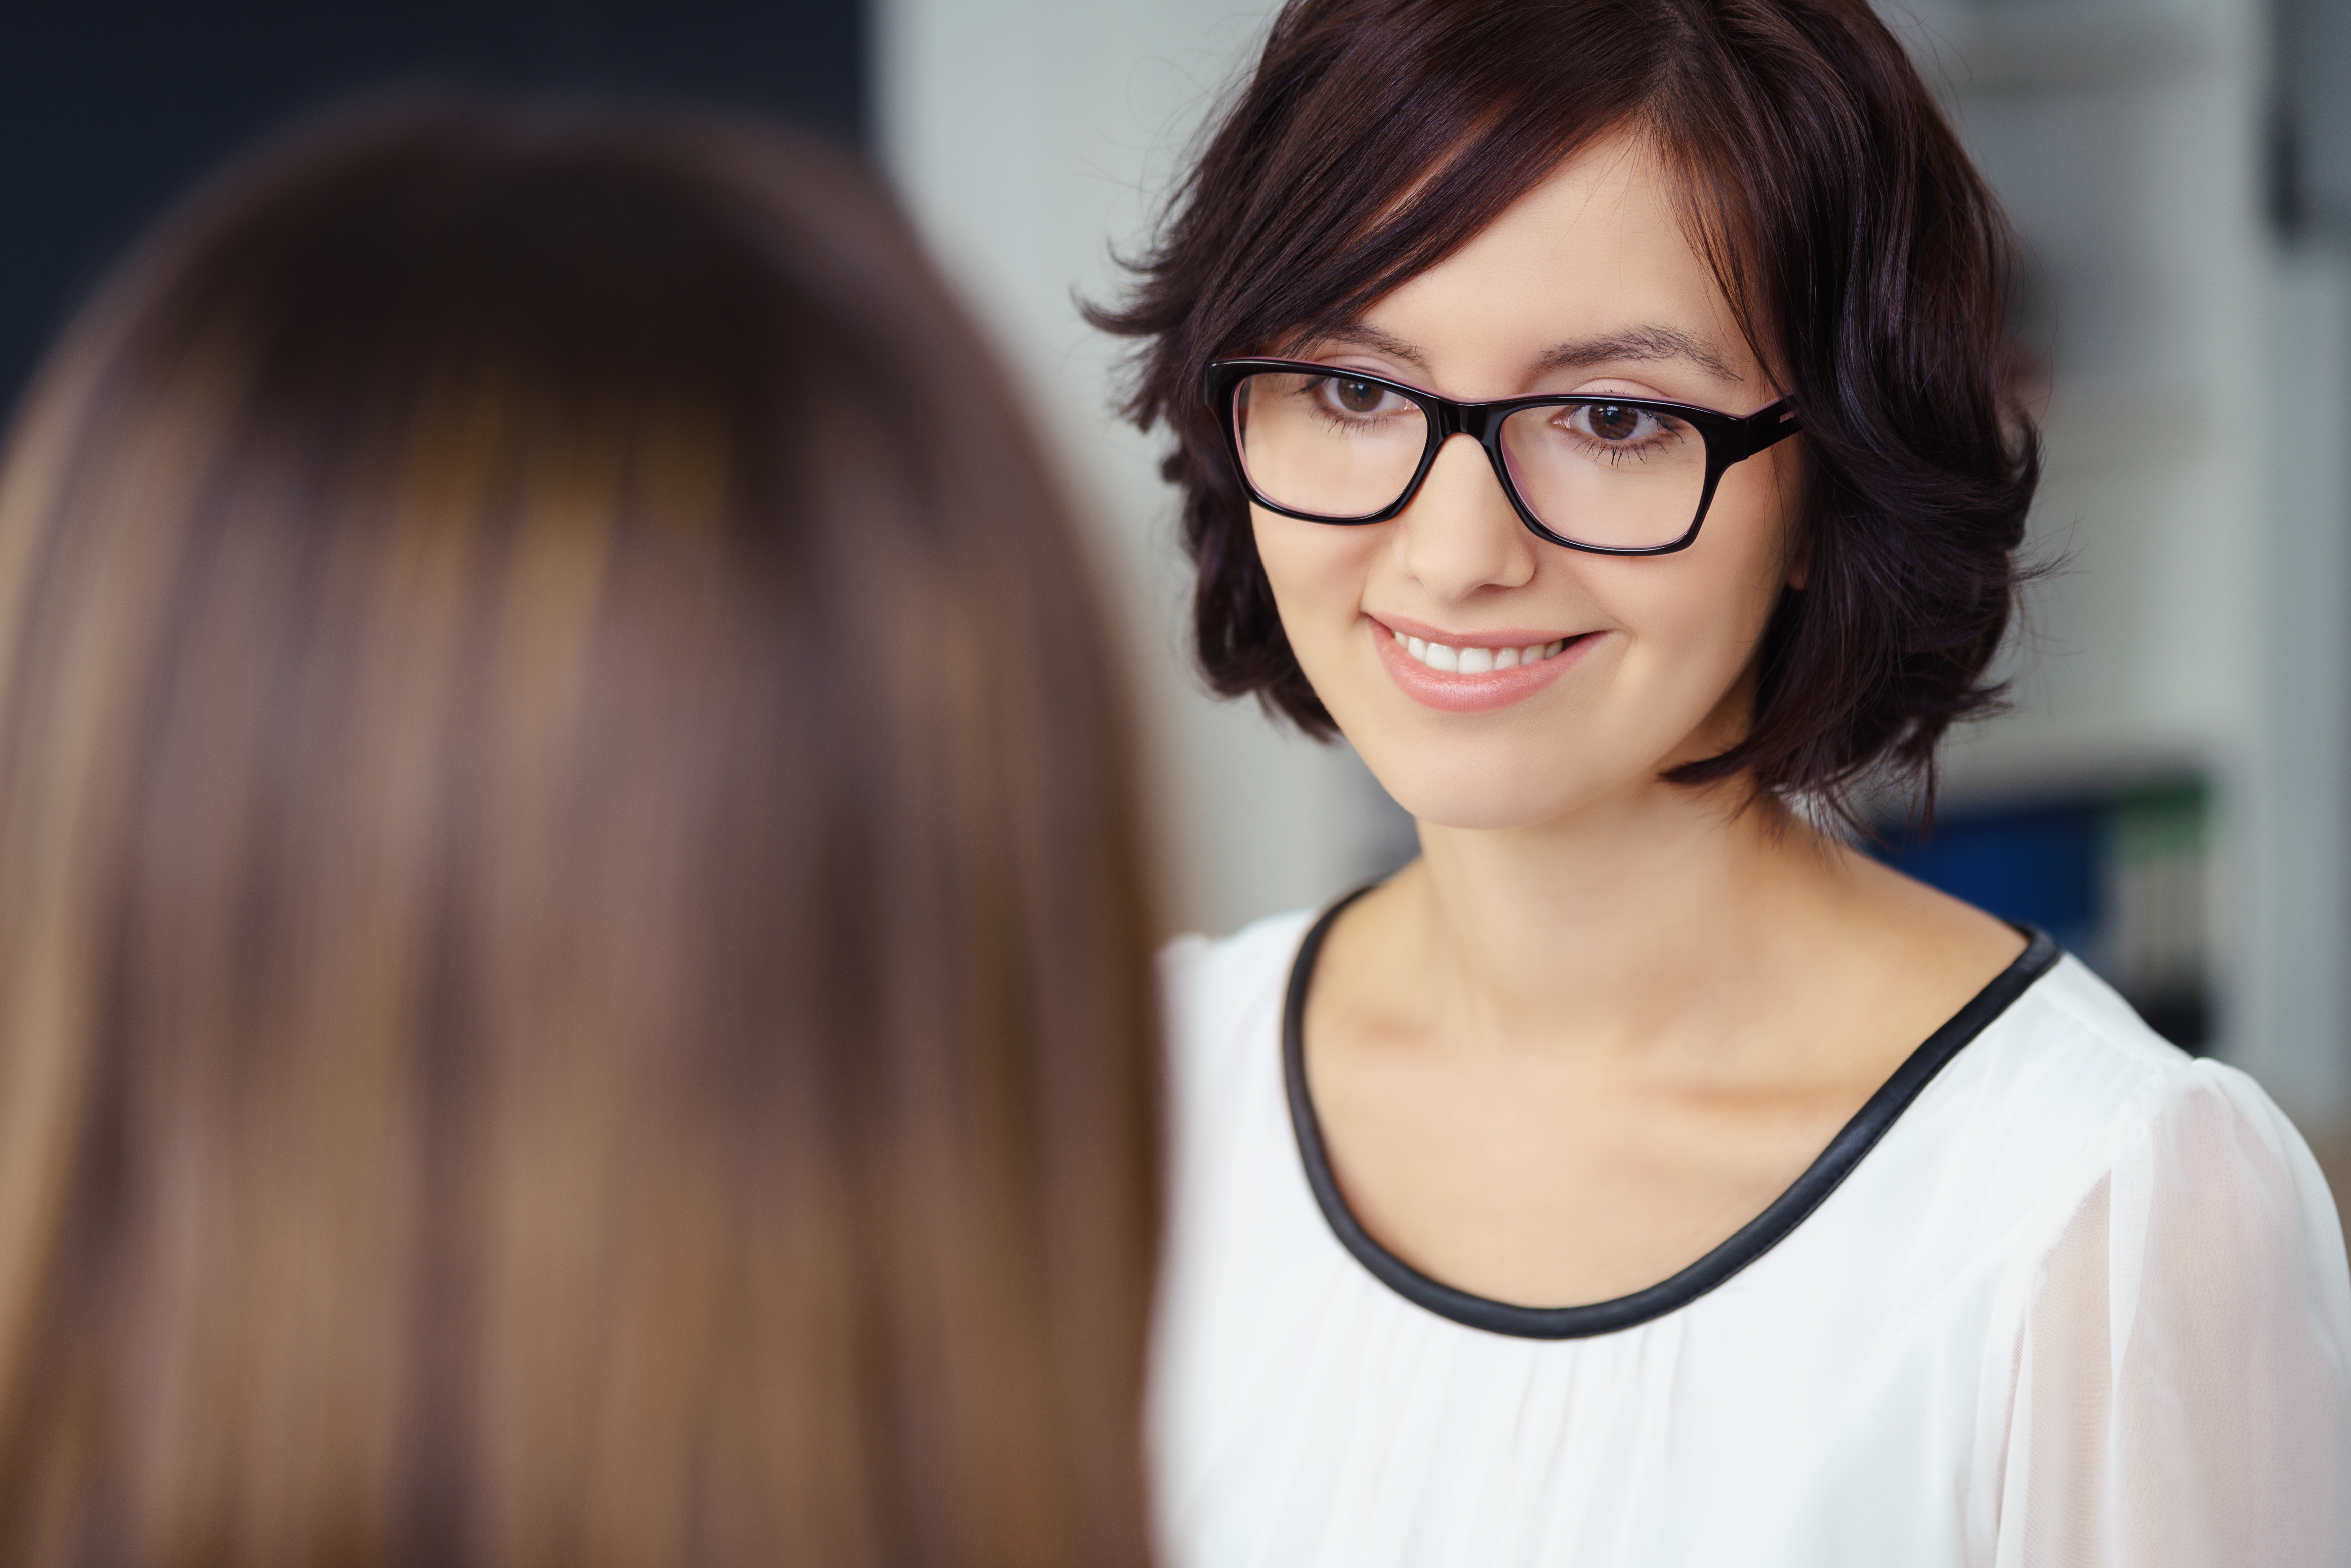 Image of young woman with short dark hair and glasses looking and smiling at her counseling client. The back of the client's head is visible, but you cannot see their face.